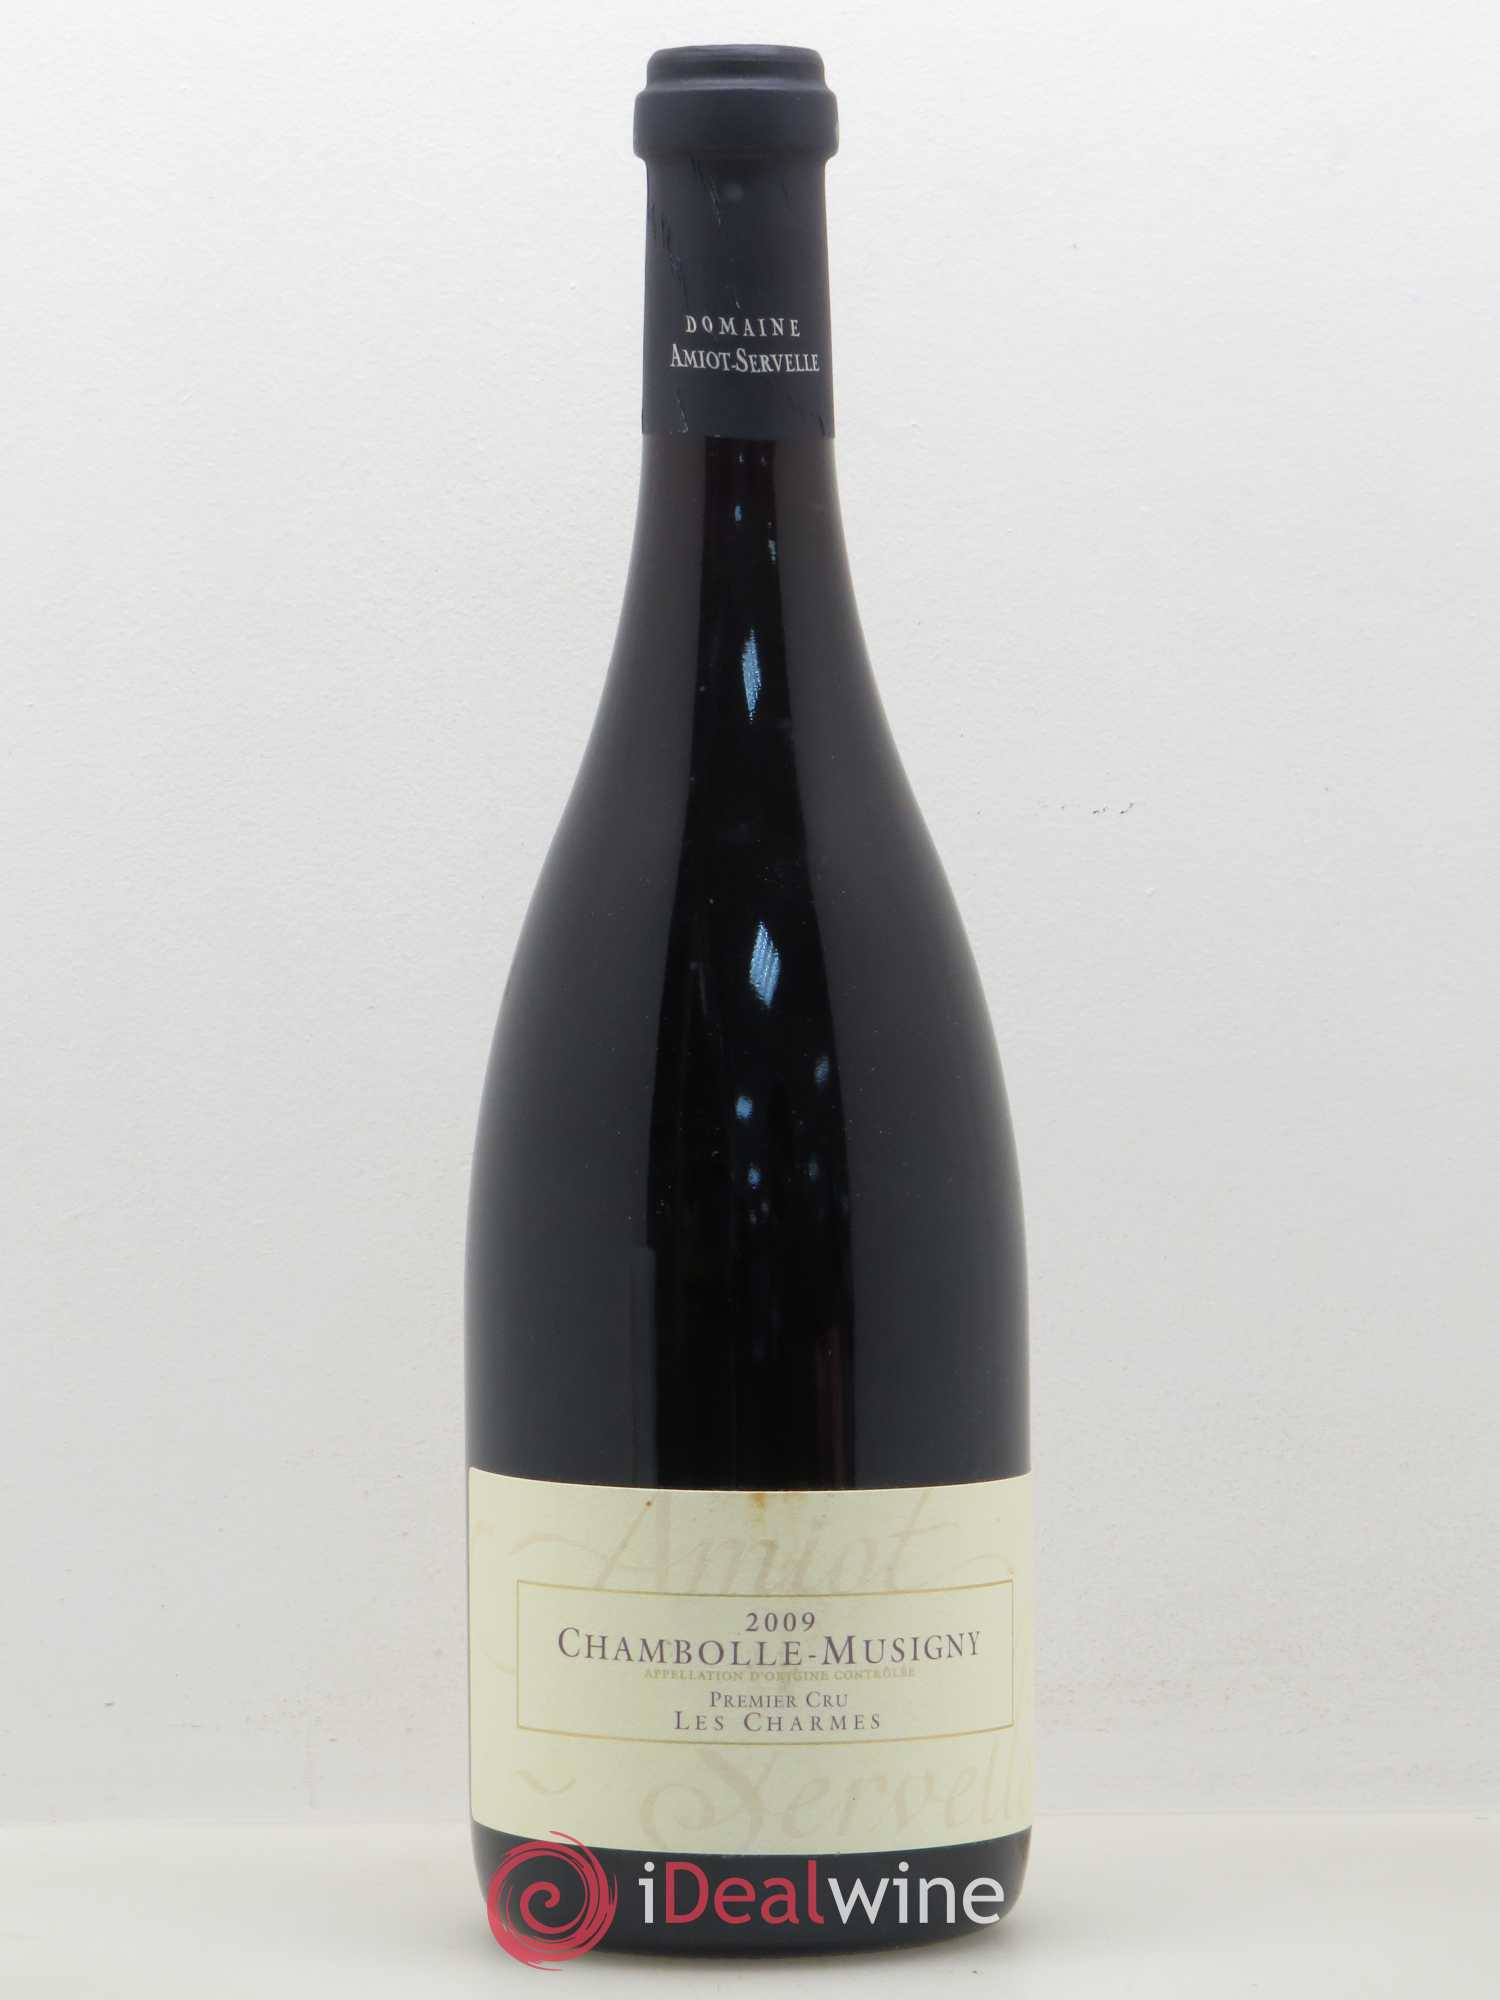 Chambolle-Musigny 1er Cru Les Charmes Amiot-Servelle (Domaine)